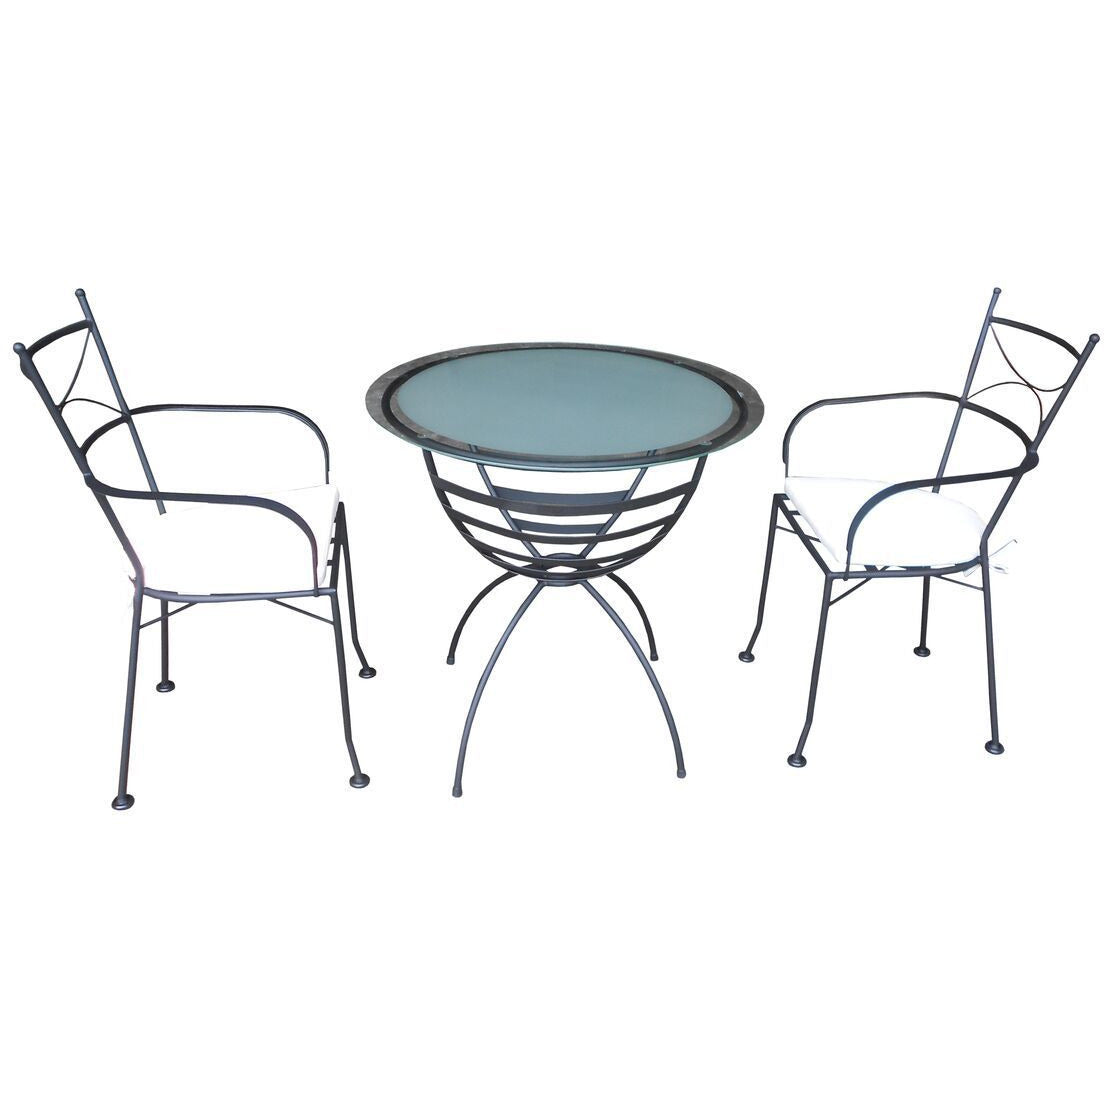 Diannaline 3 Piece Set(Chair & Table) - Outdoor Living Essentials